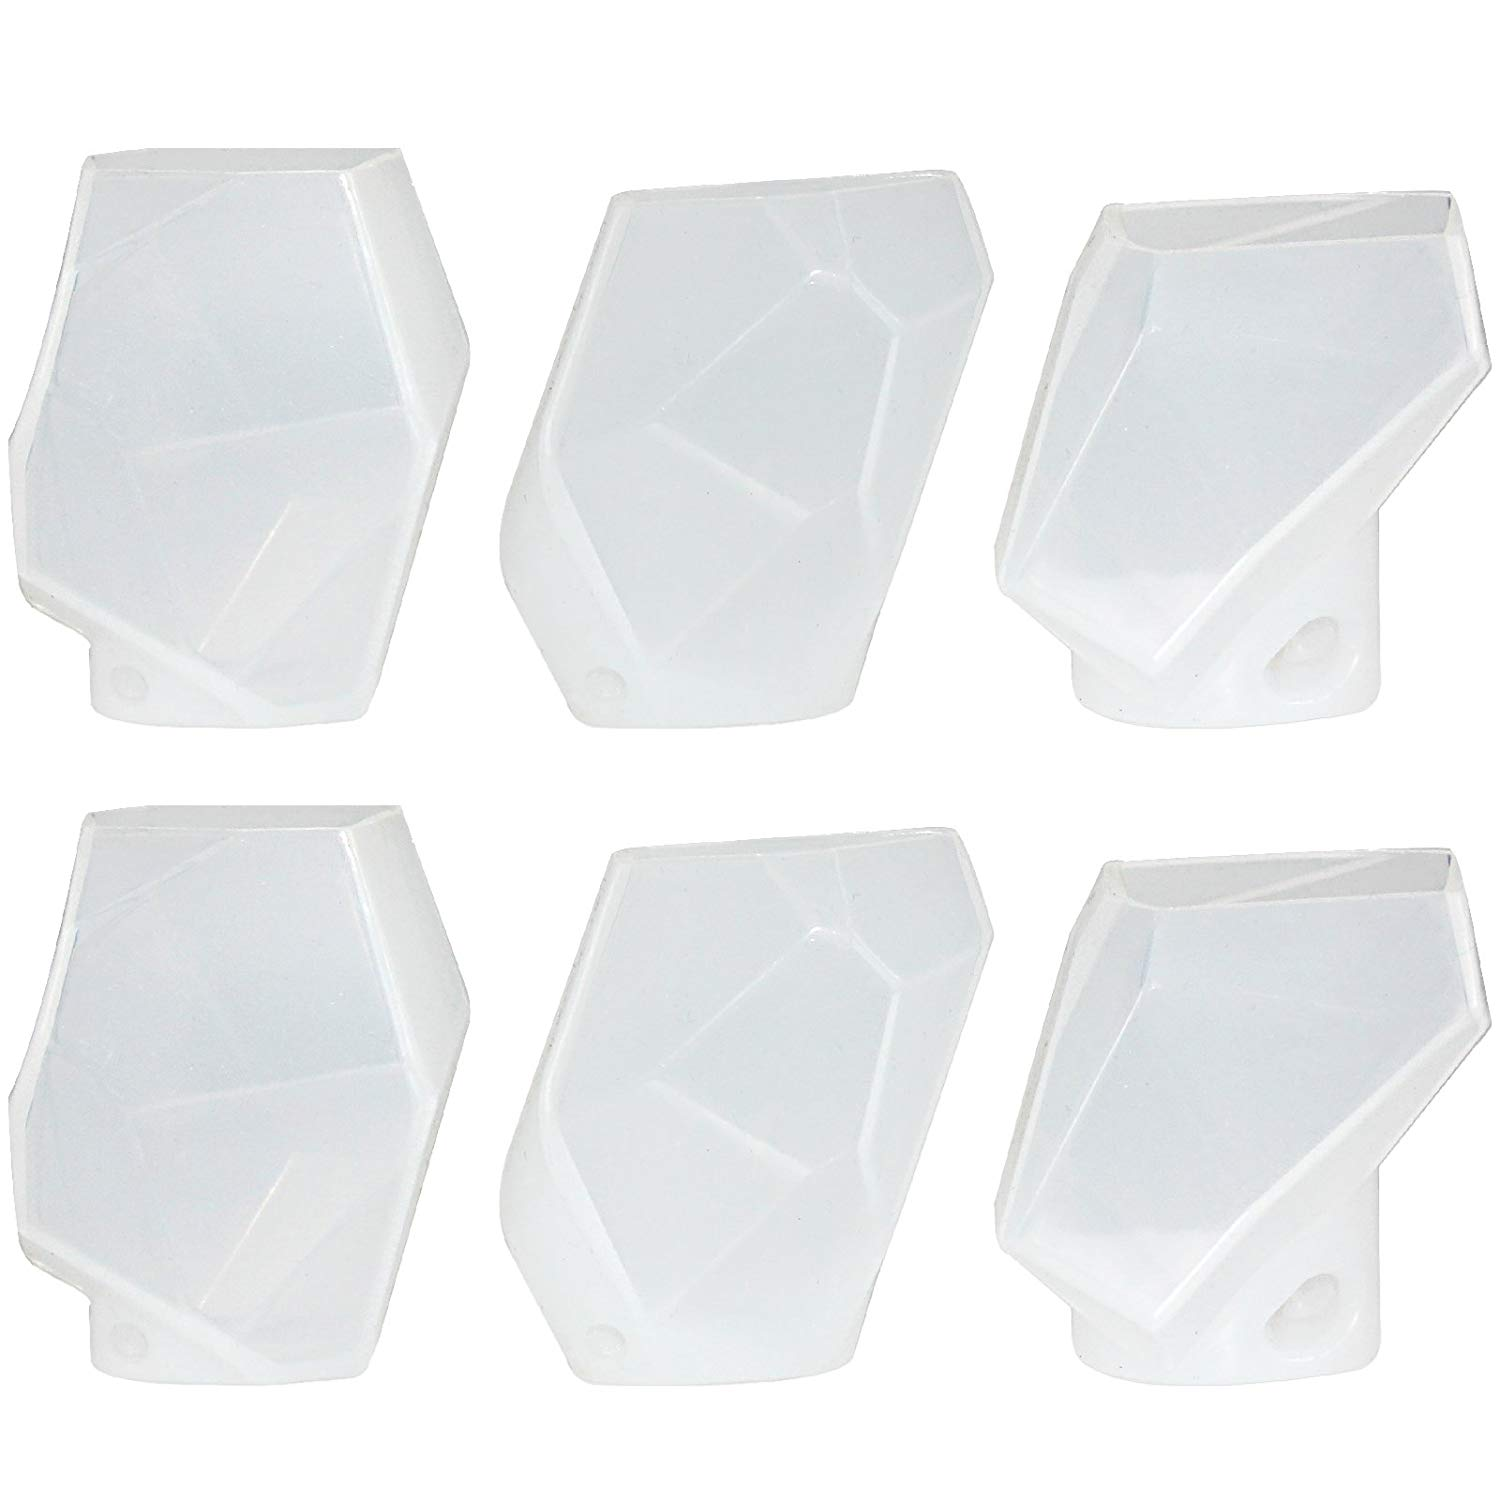 Large Multi-Faceted Gem Stone Resin Epoxy Mold For Jewelry, Soap Making,  Cabochon Gemstone Crafting Projects 6-Pack